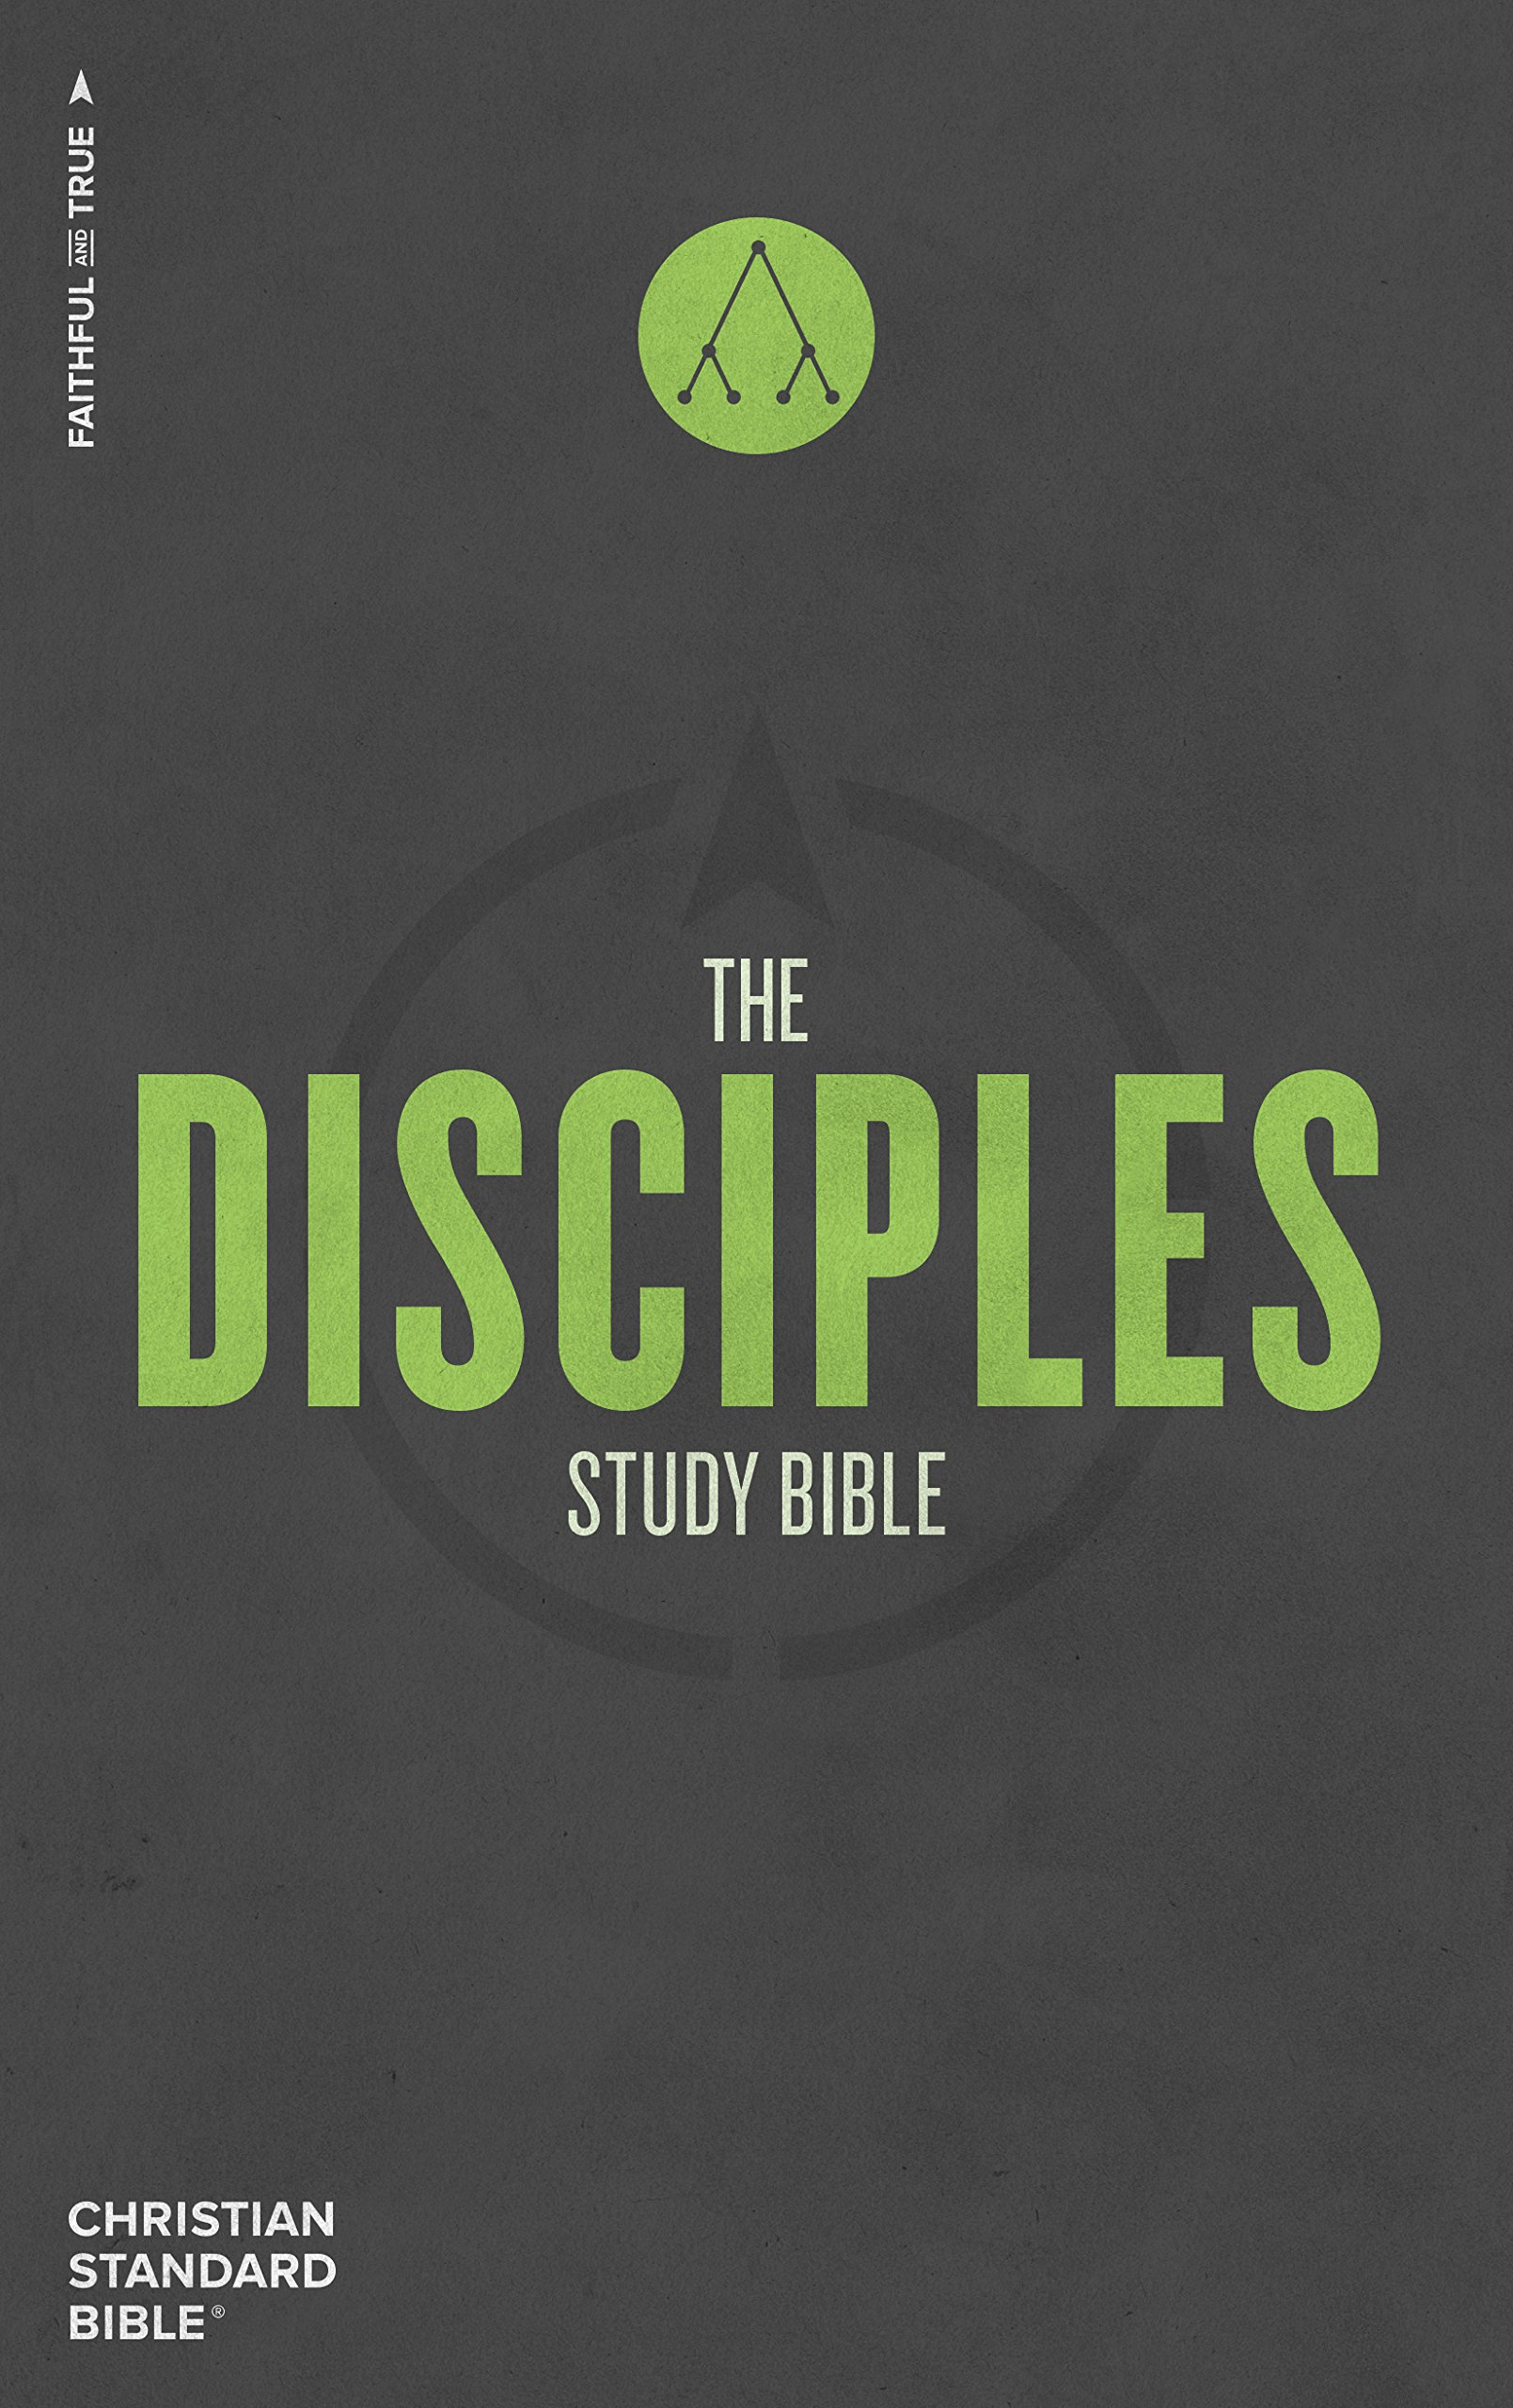 The Disciples Study Bible